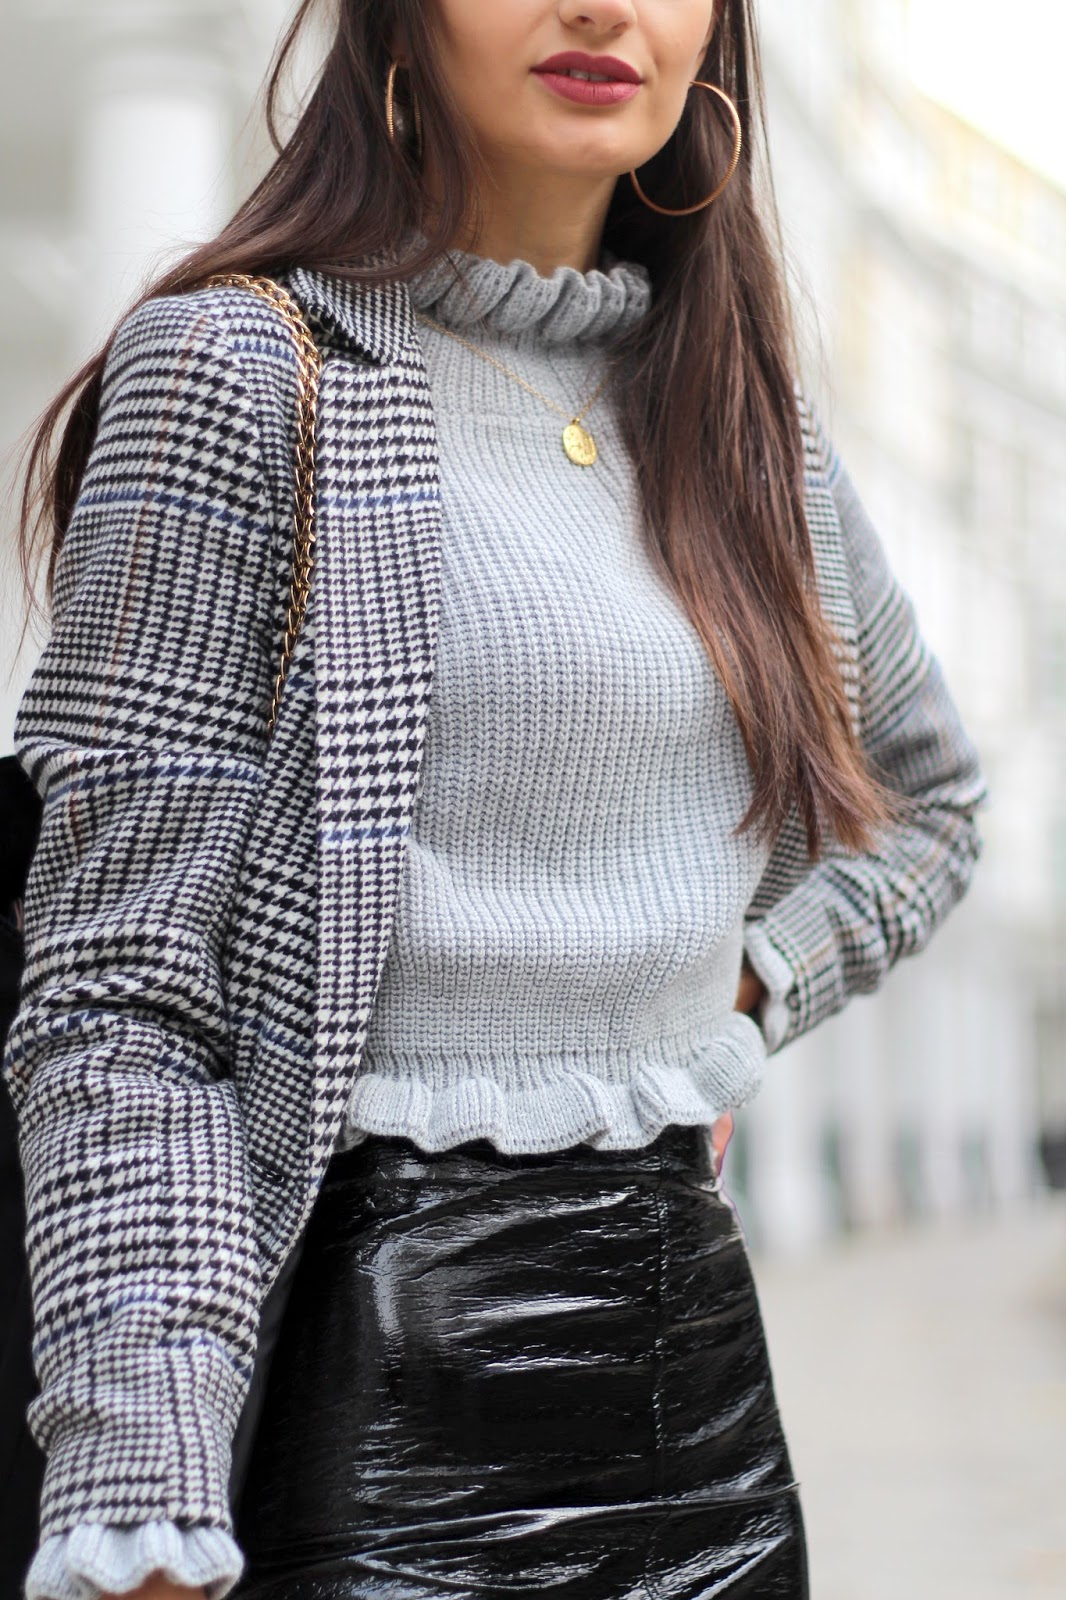 peexo fashion blogger street style